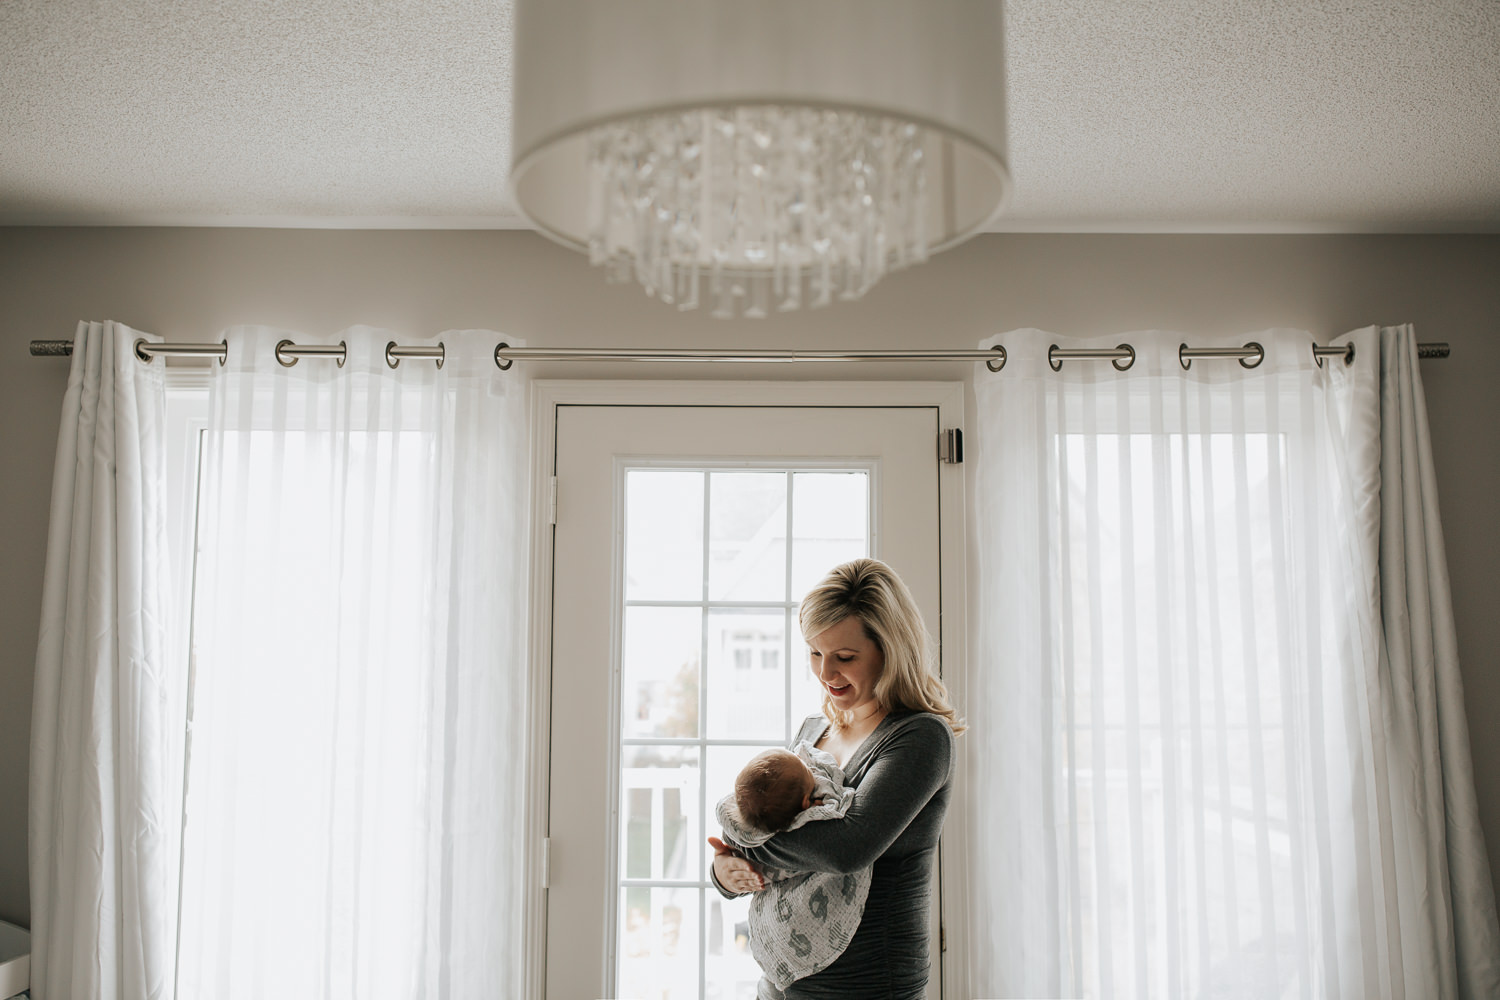 GTA In-Home Photos  - blonde mom adoring her new 2 week old baby boy standing by the door with a crystal chandelier up above